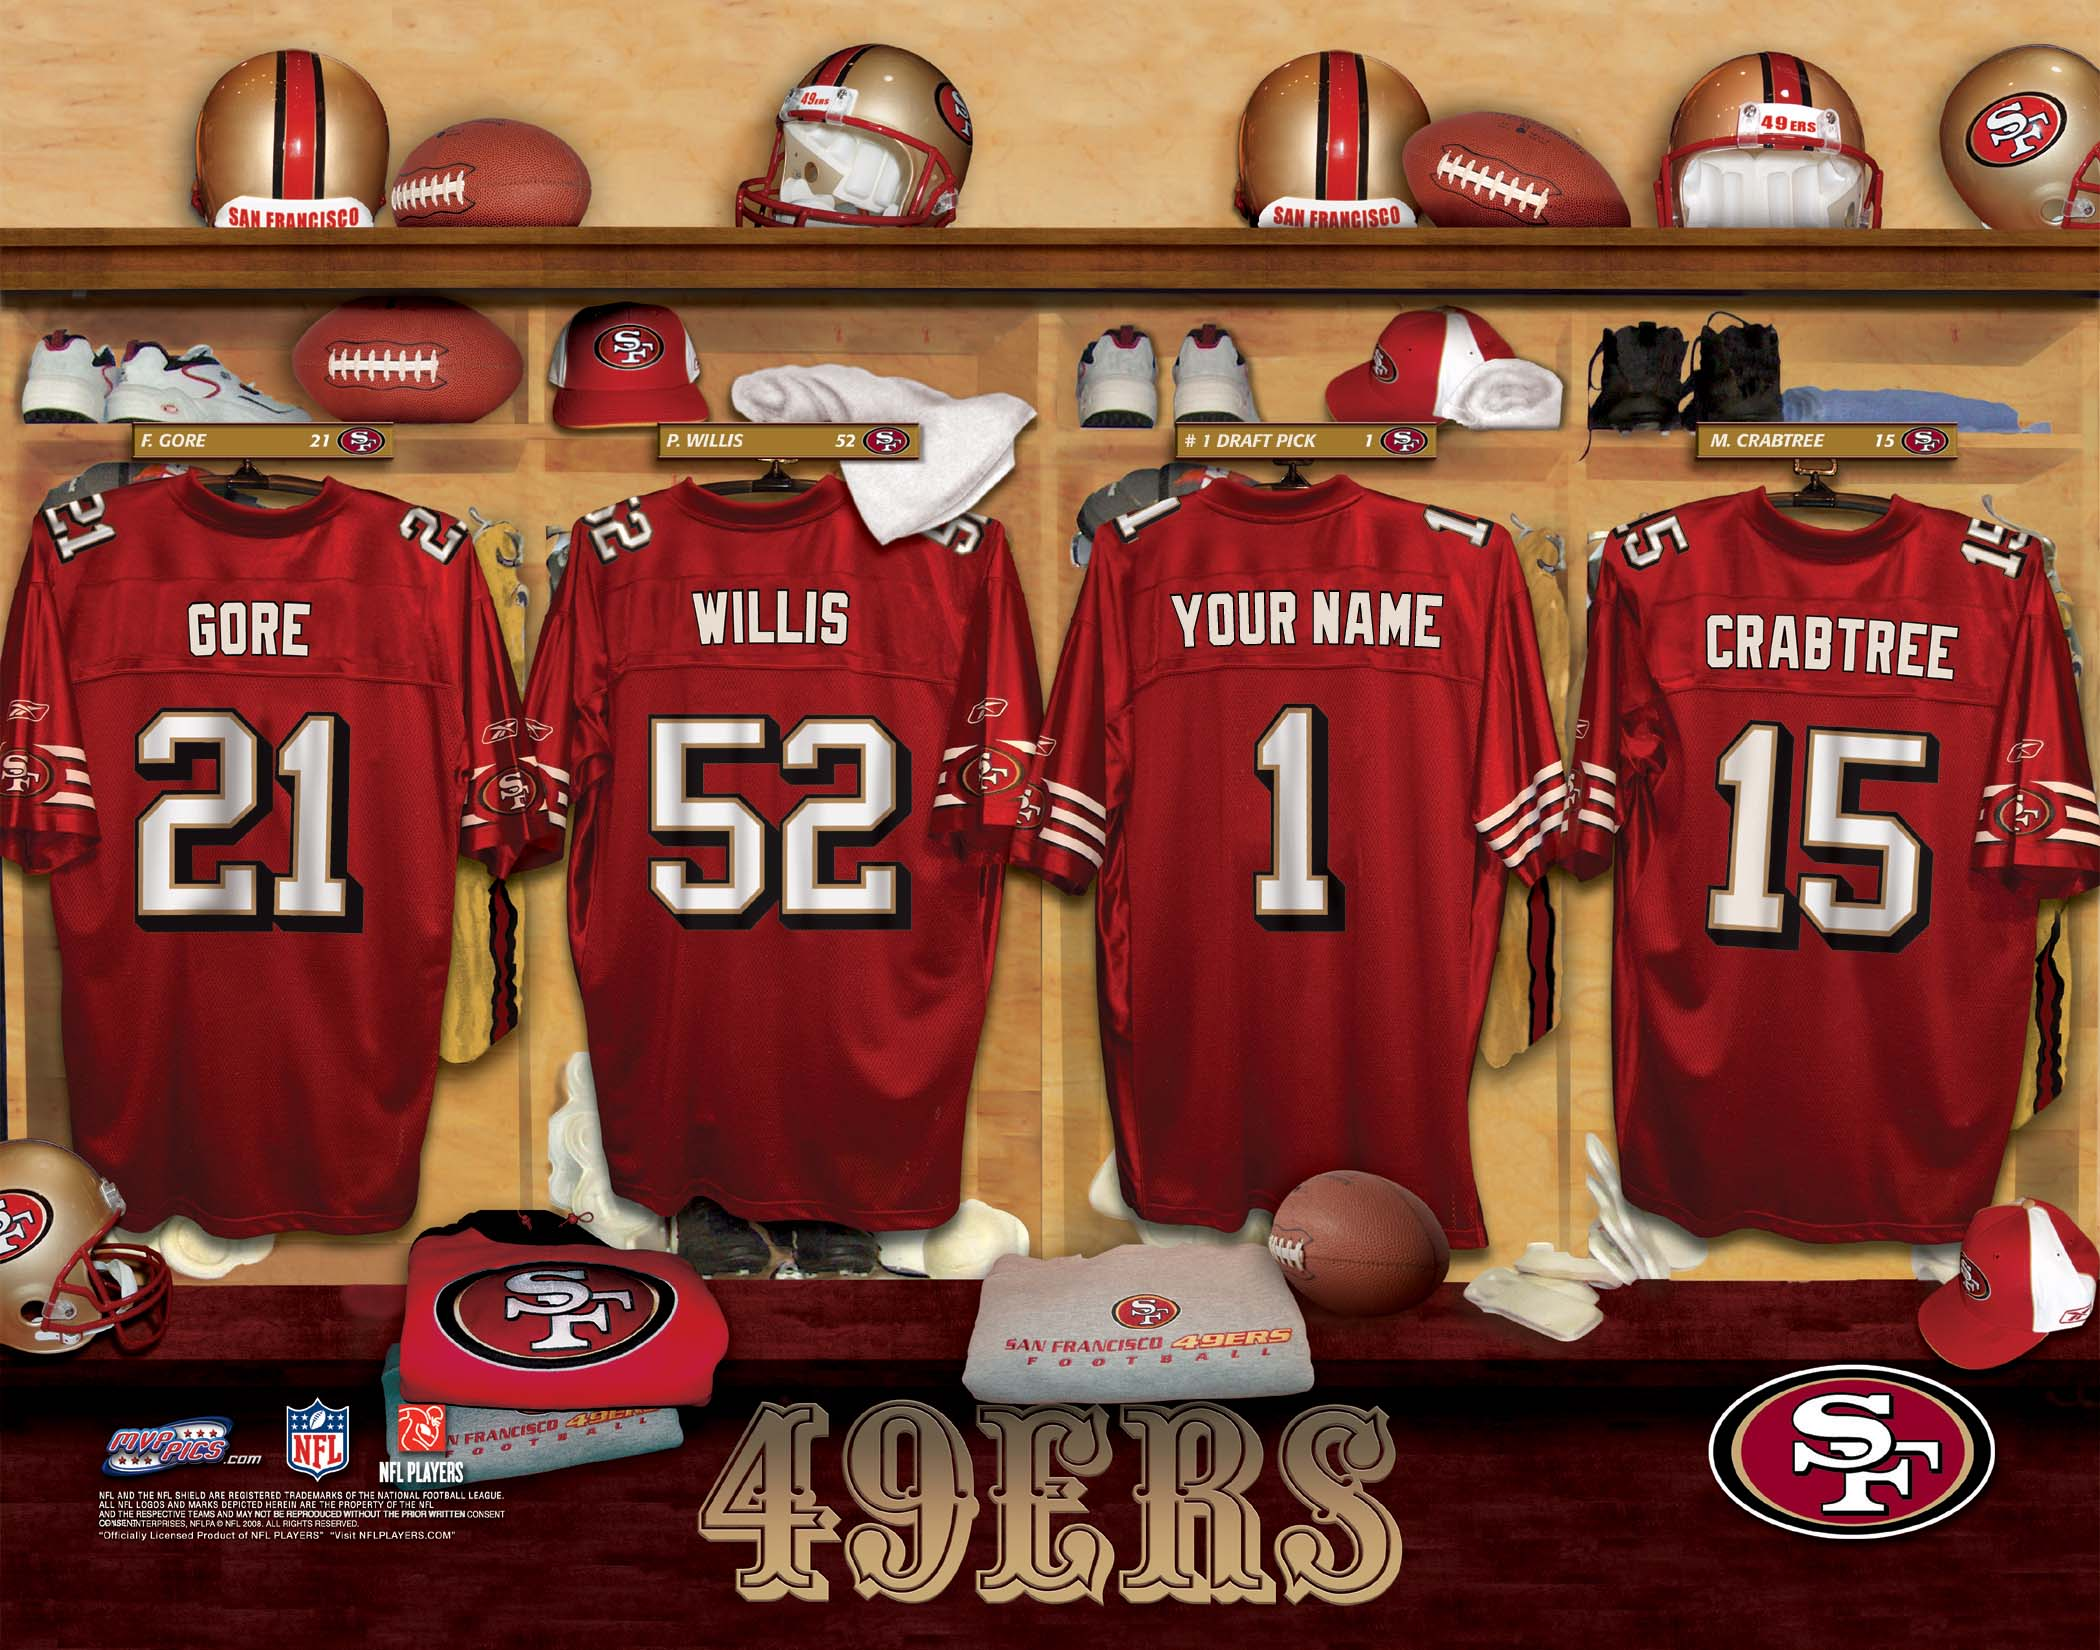 San francisco 49ers wallpapers 2015 wallpaper cave san francisco 49ers wallpaper 2014 sky hd wallpaper voltagebd